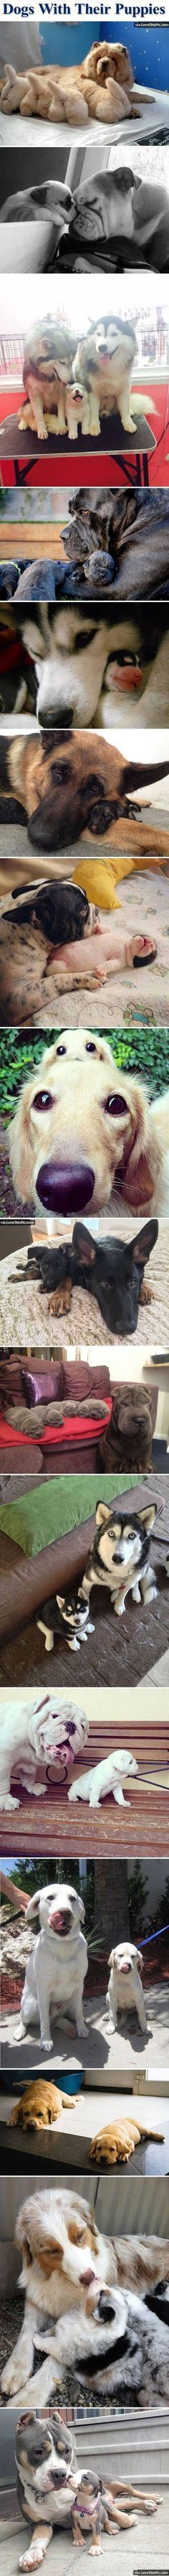 Dogs With Their Puppies cute animals dogs adorable dog puppy animal pets funny…